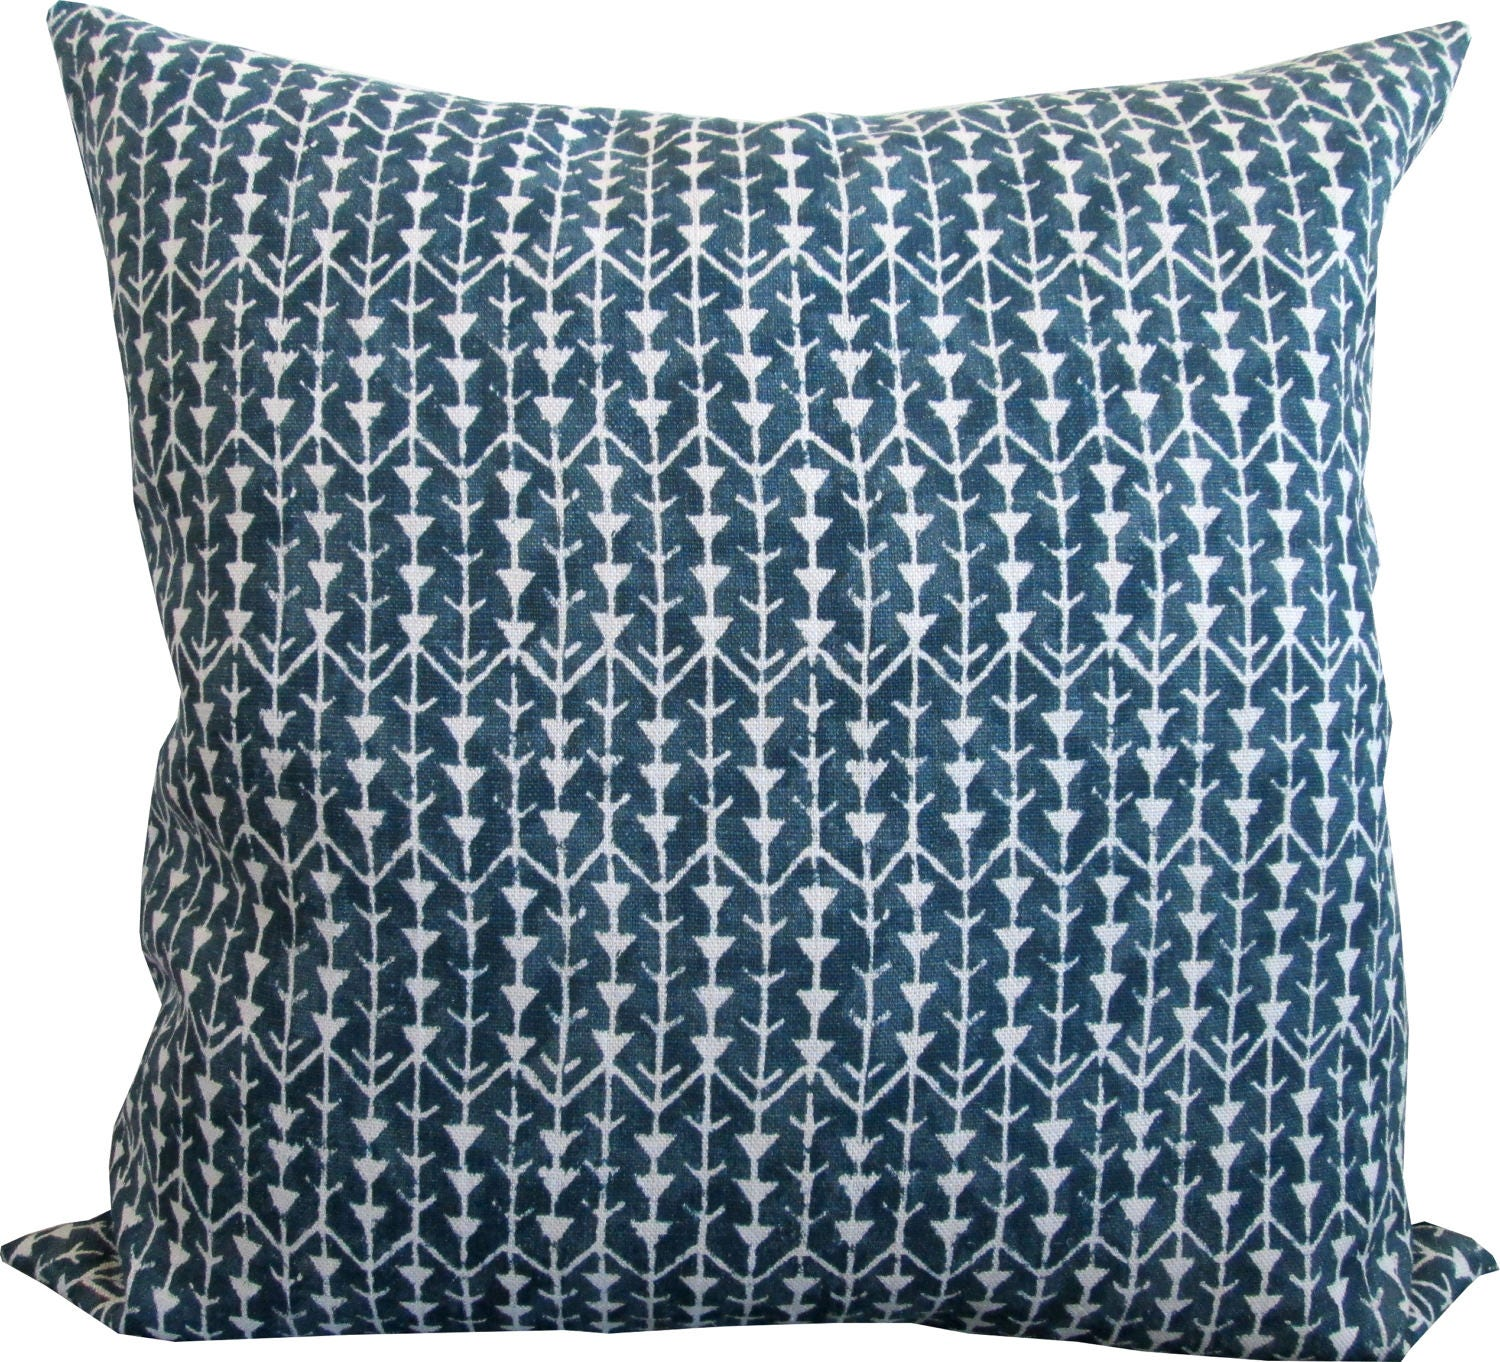 High End Designer Throw Pillows Part - 36: Details. Designer Decorative Pillow Cover